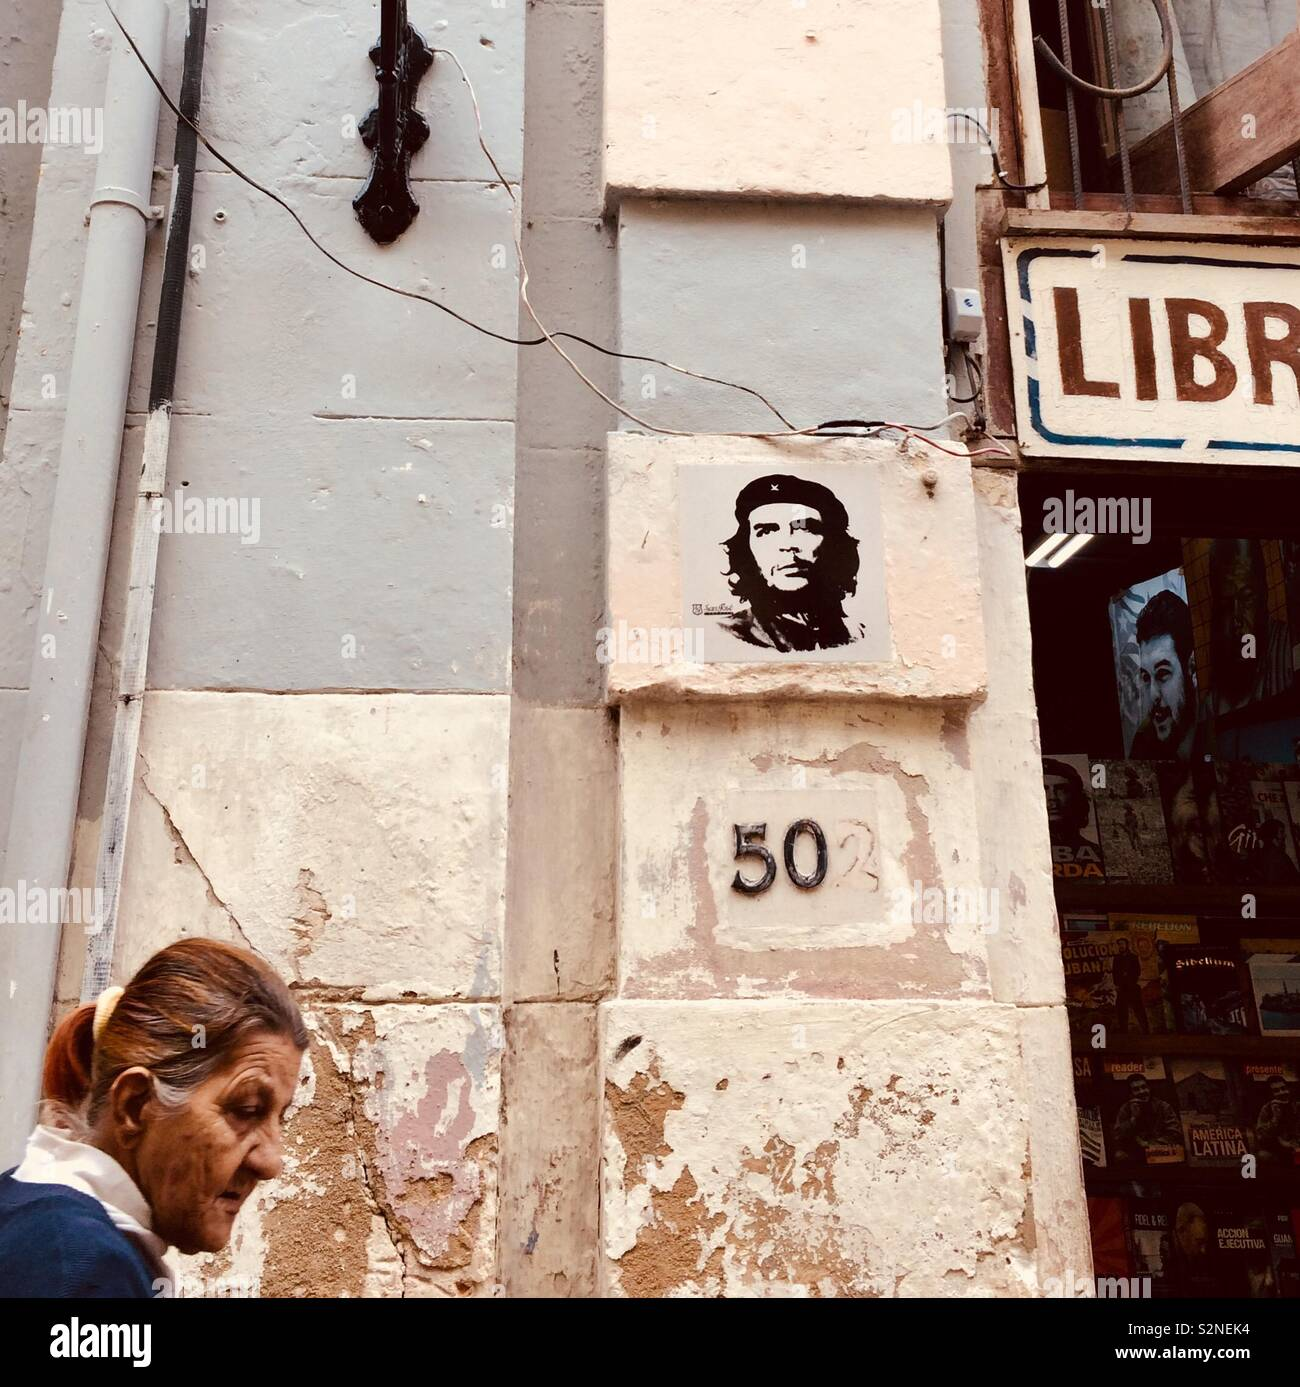 A street in Havana, Cuba with wall poster of Che Guevara - Stock Image